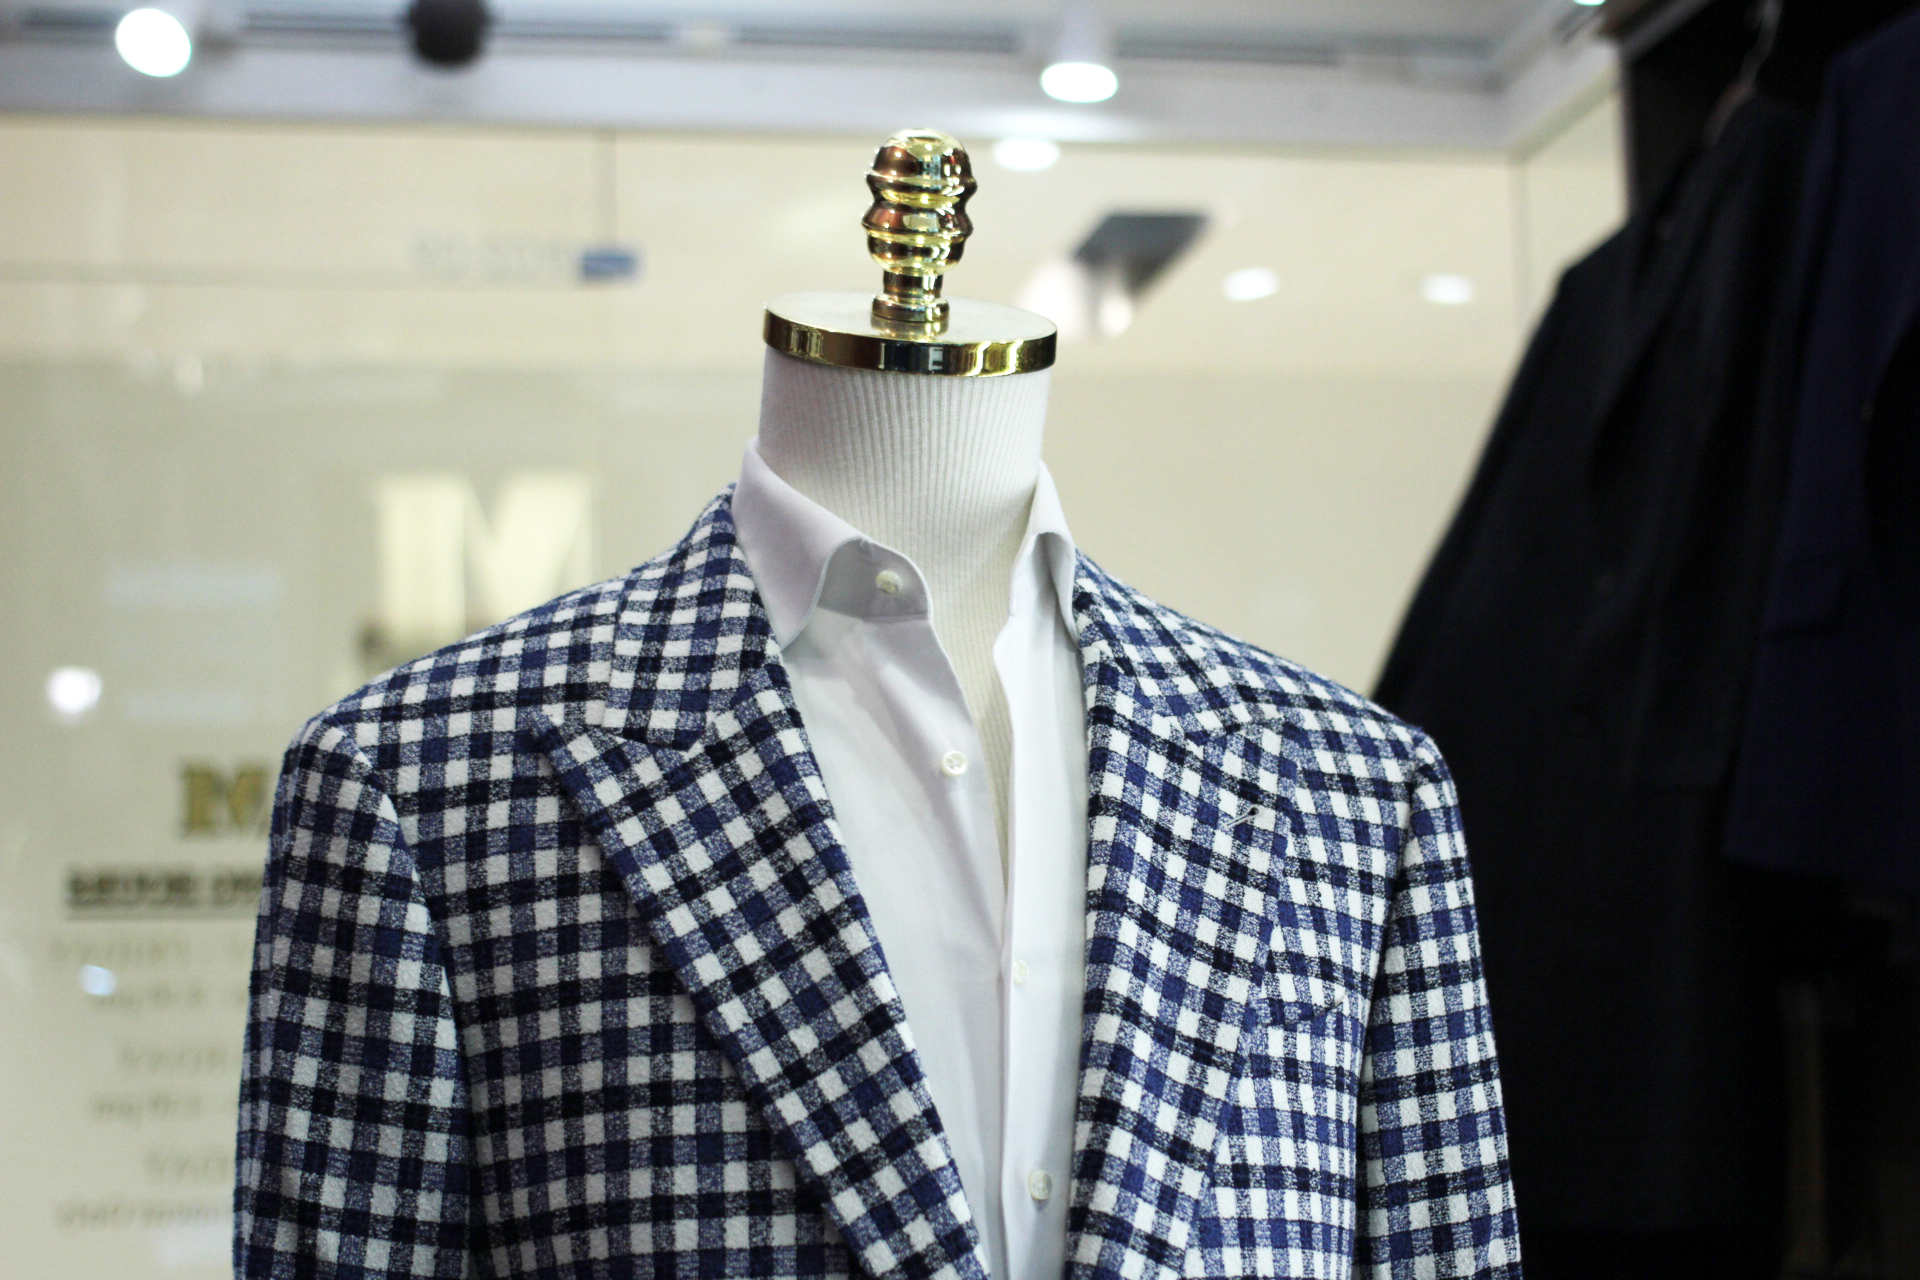 Ribbon | MARZONI | Tailor Made Suits | Made Suits Singapore | Blazer | Checks Single Breasted Suit side.JPG